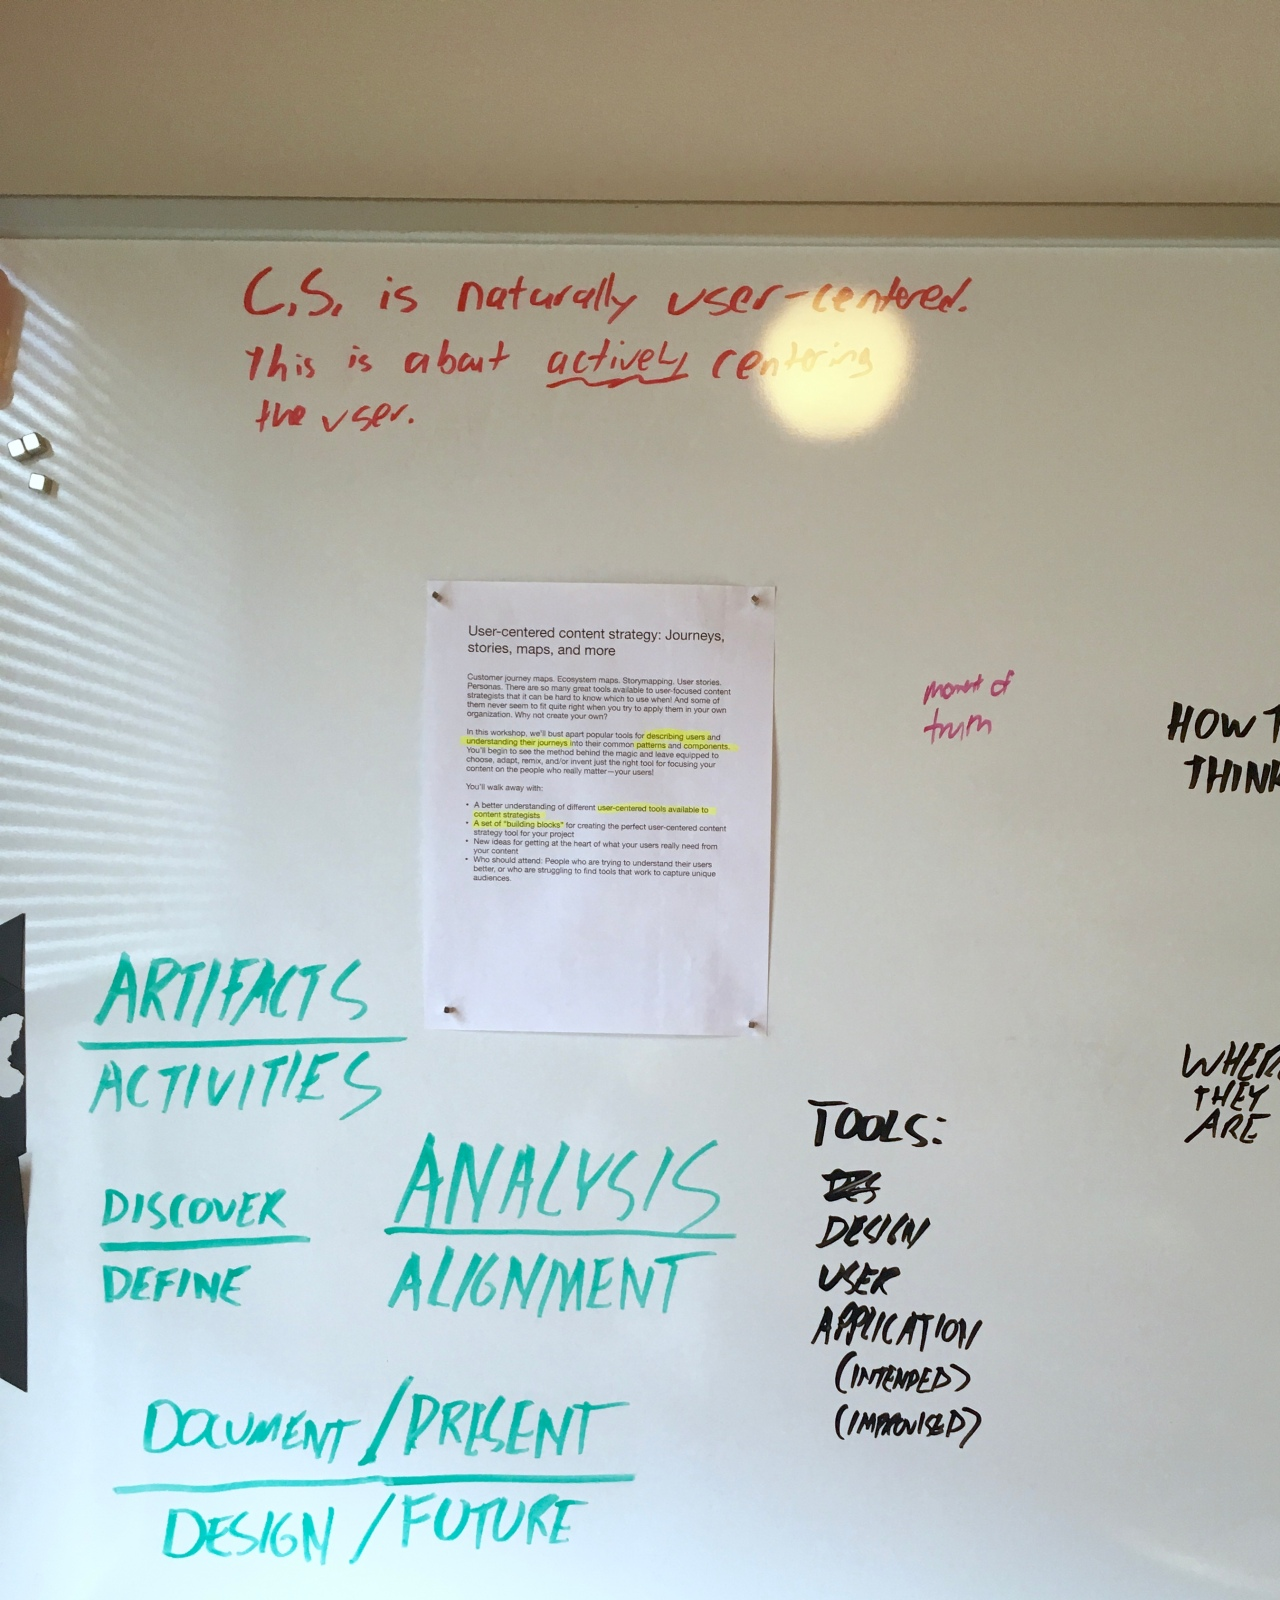 I used some of the whiteboard to jot down themes I wanted to focus on.